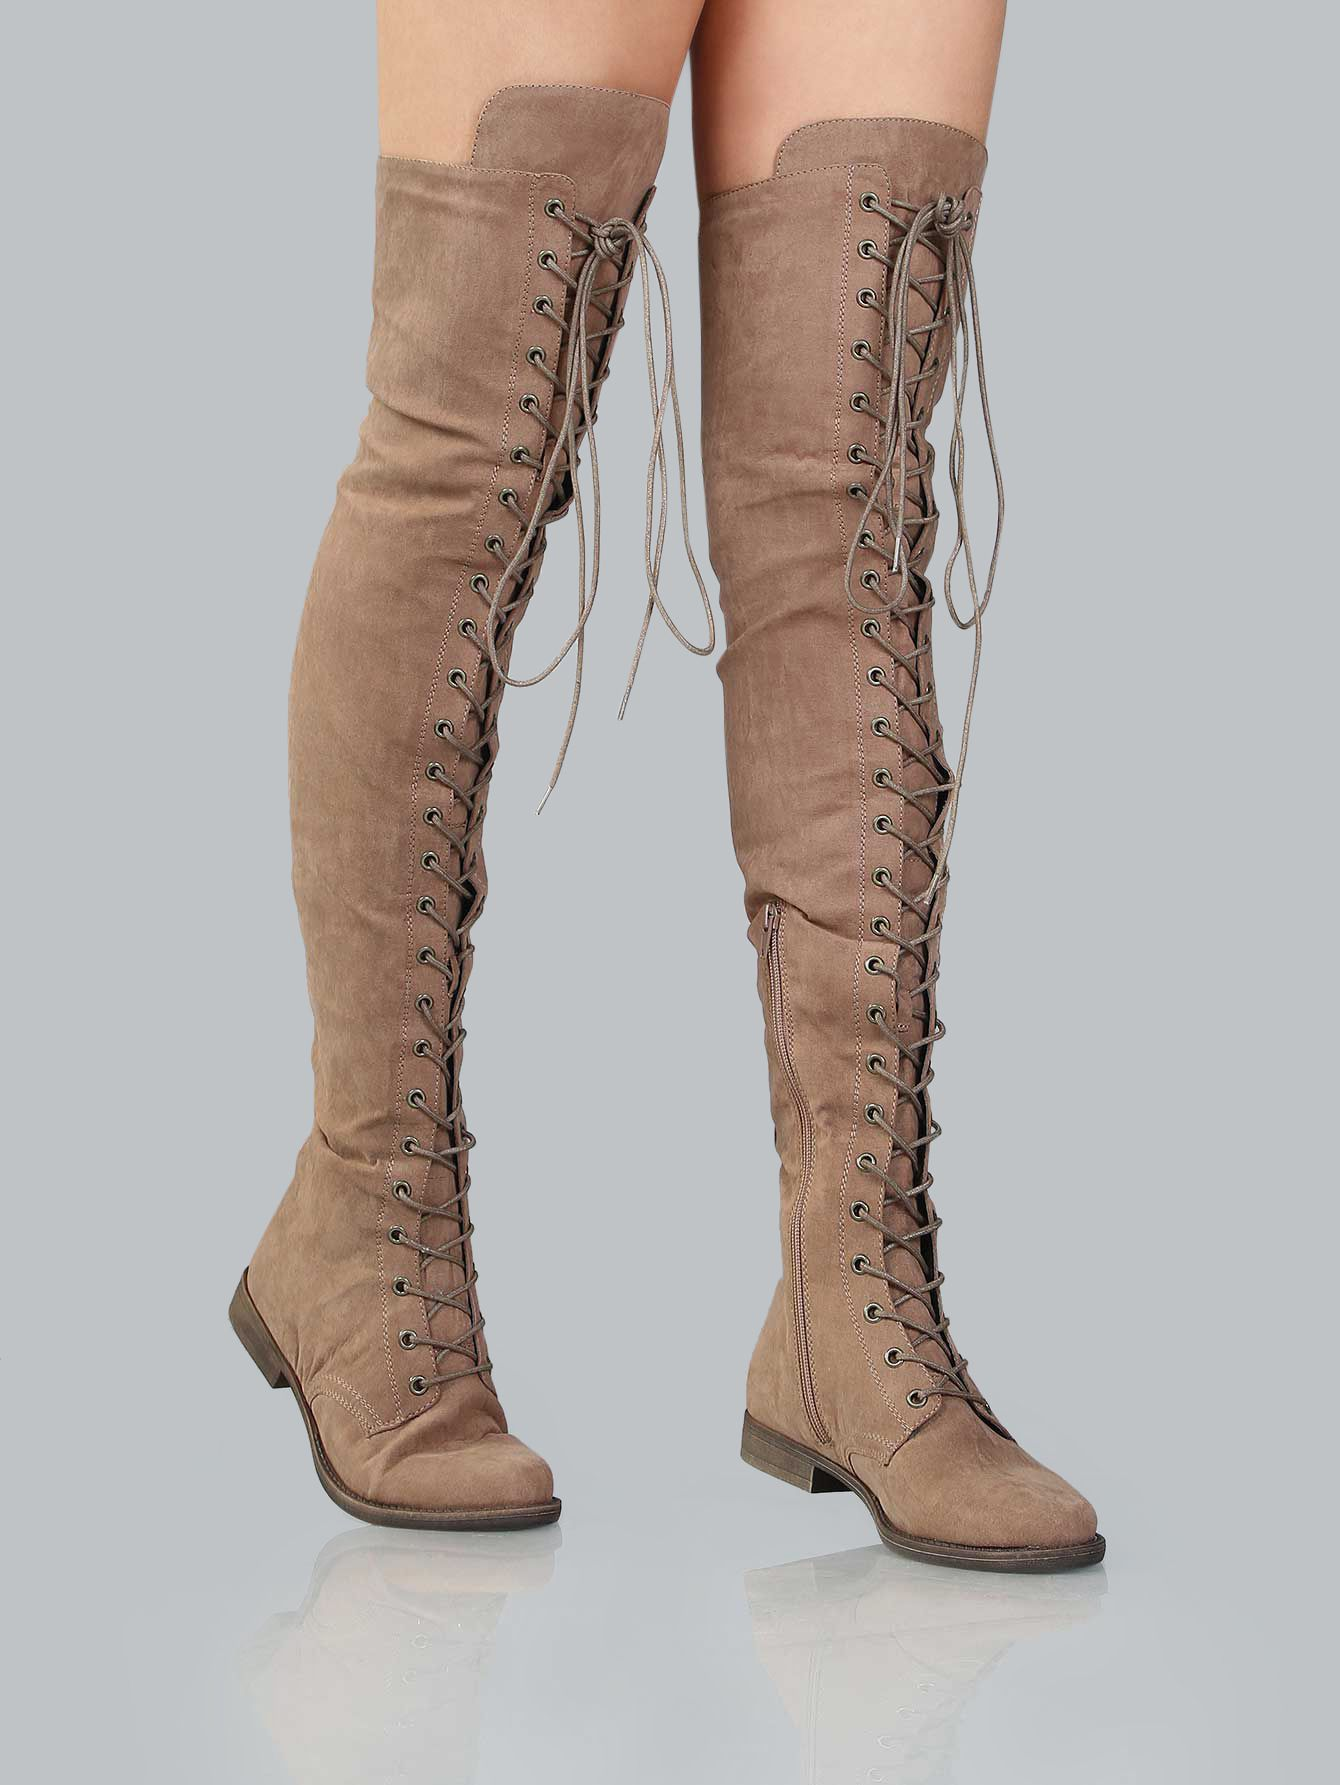 Bottes Taupe Plates En Daim Avec Lacet French Shein Sheinside Bottes Bottes Taupe Chaussure Mode